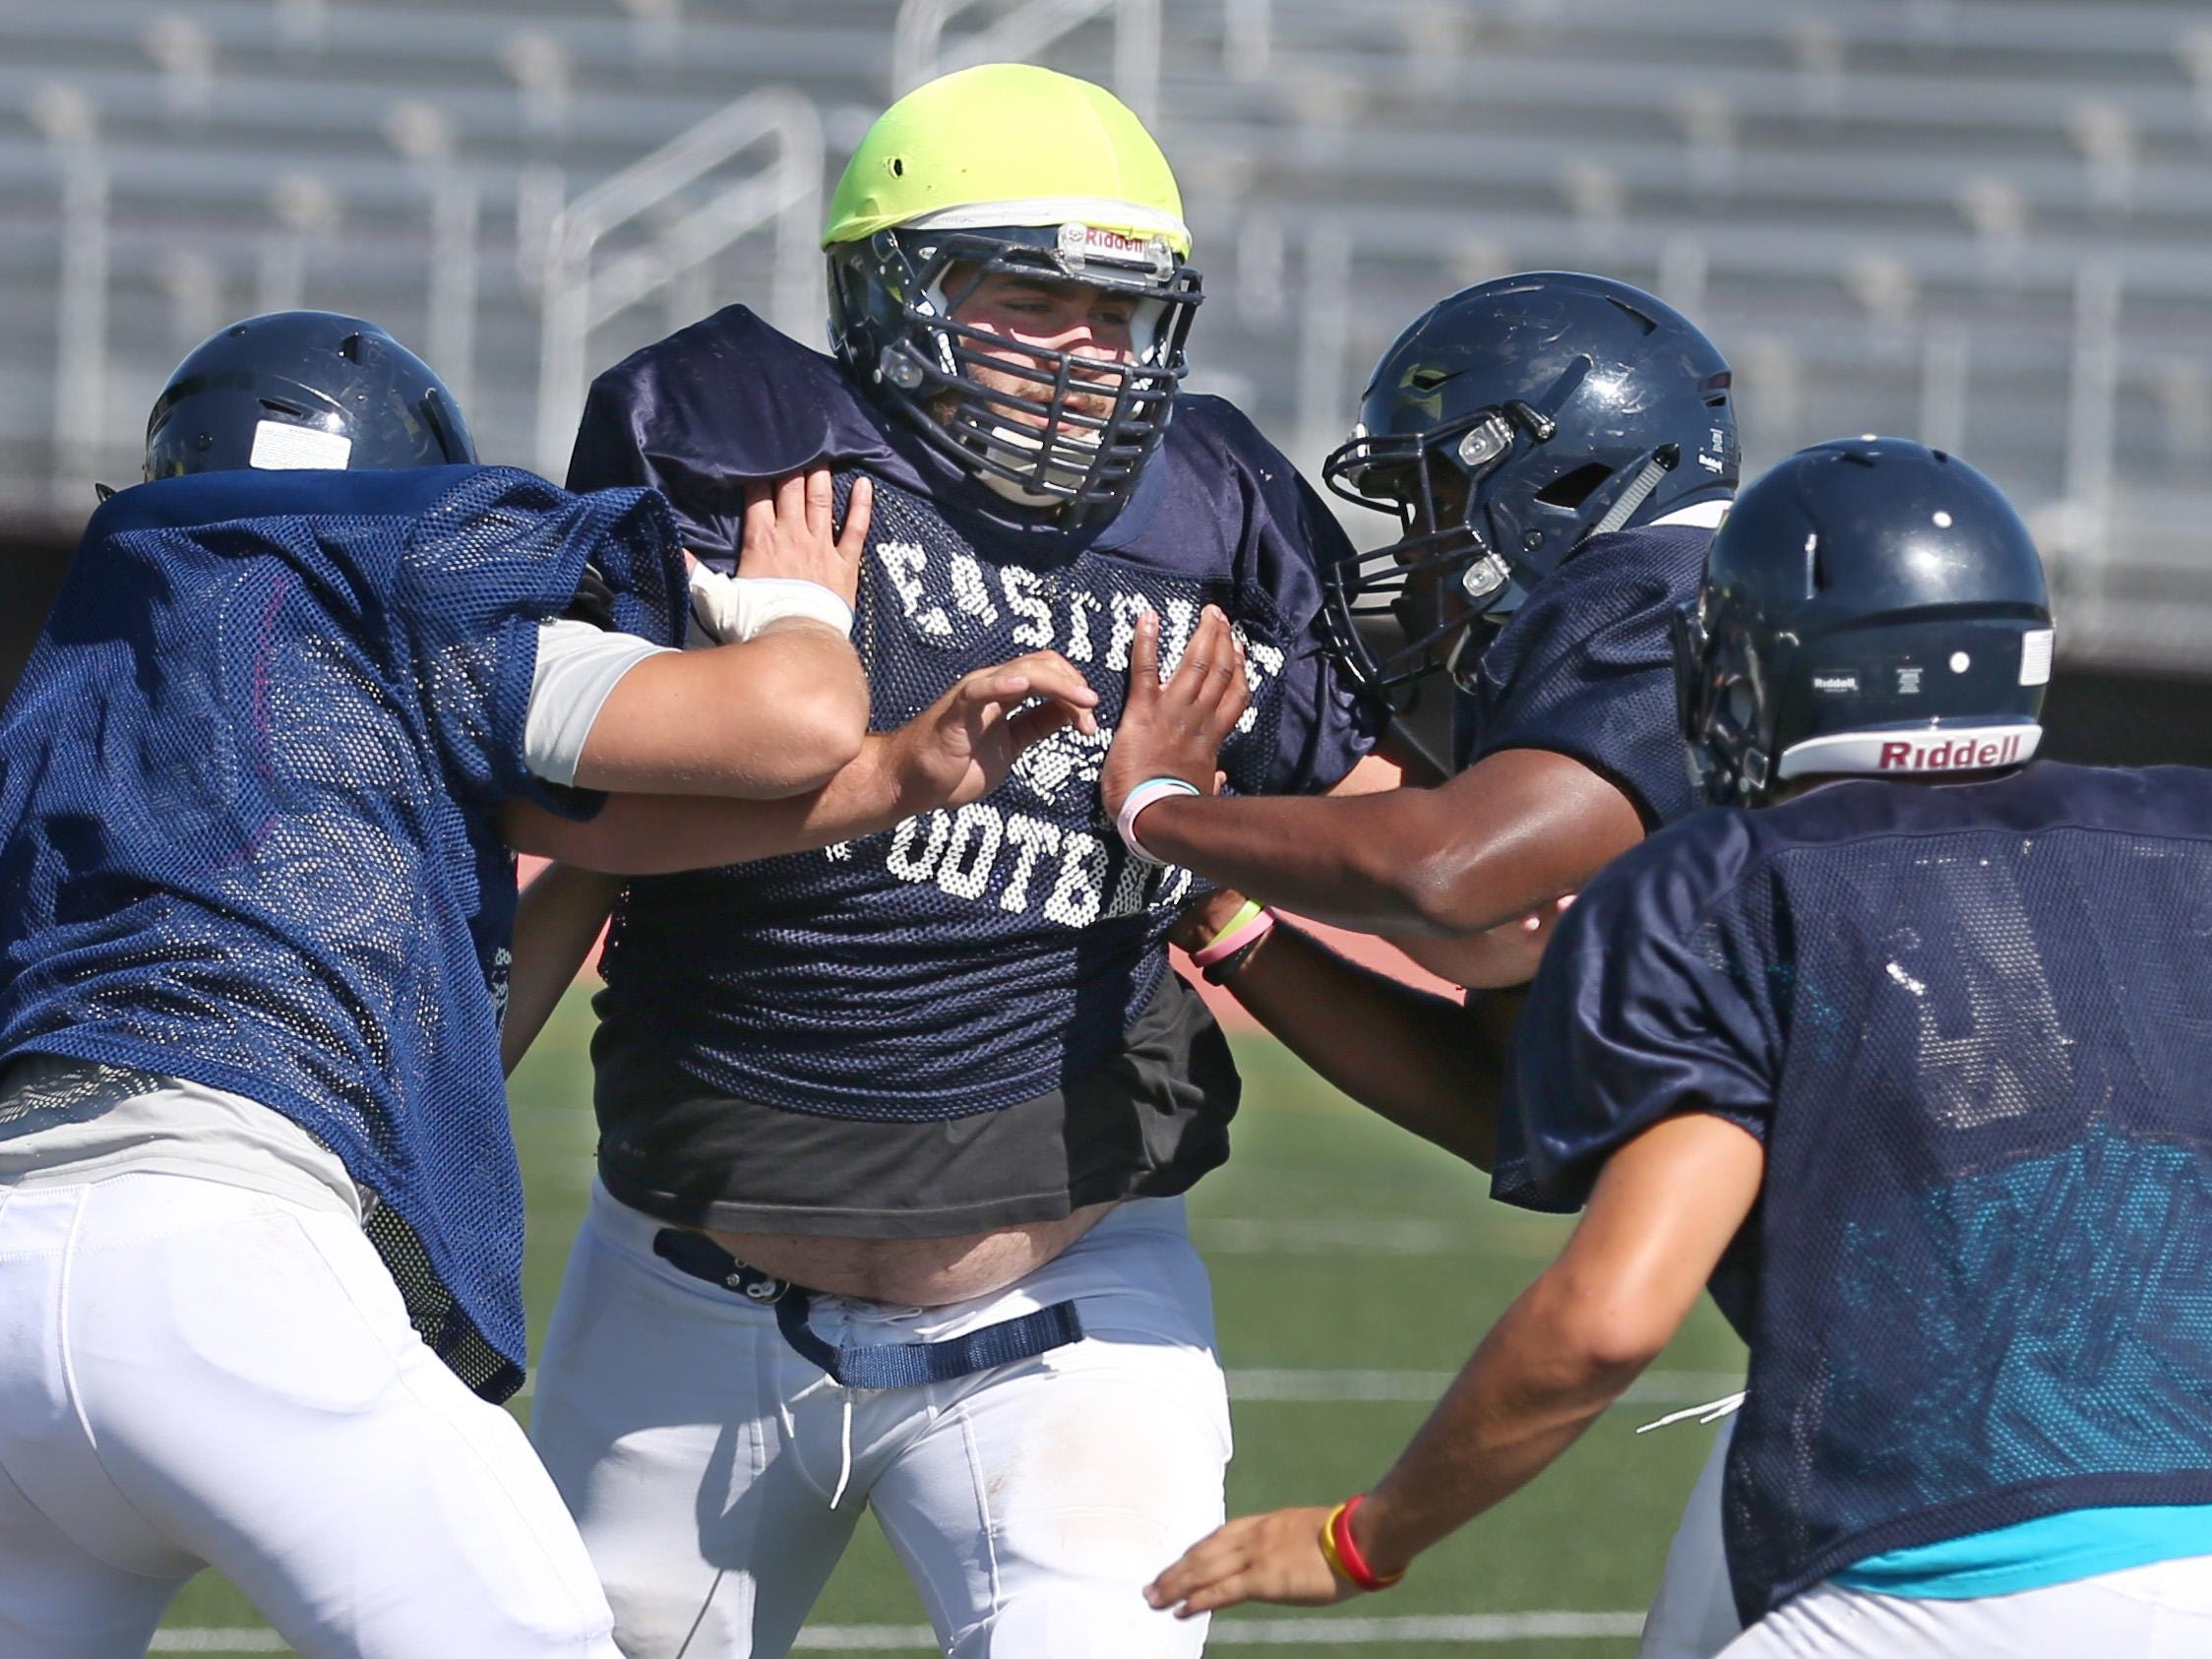 Joe Capuano, DL/OL, power rushes through three defenders to put pressure on the ball during kickoff drills during practice at Eastridge High School in Irondequoit on Monday. Eastridge is the eighth stop on the Democrat and Chronicle's high school football camp tour.